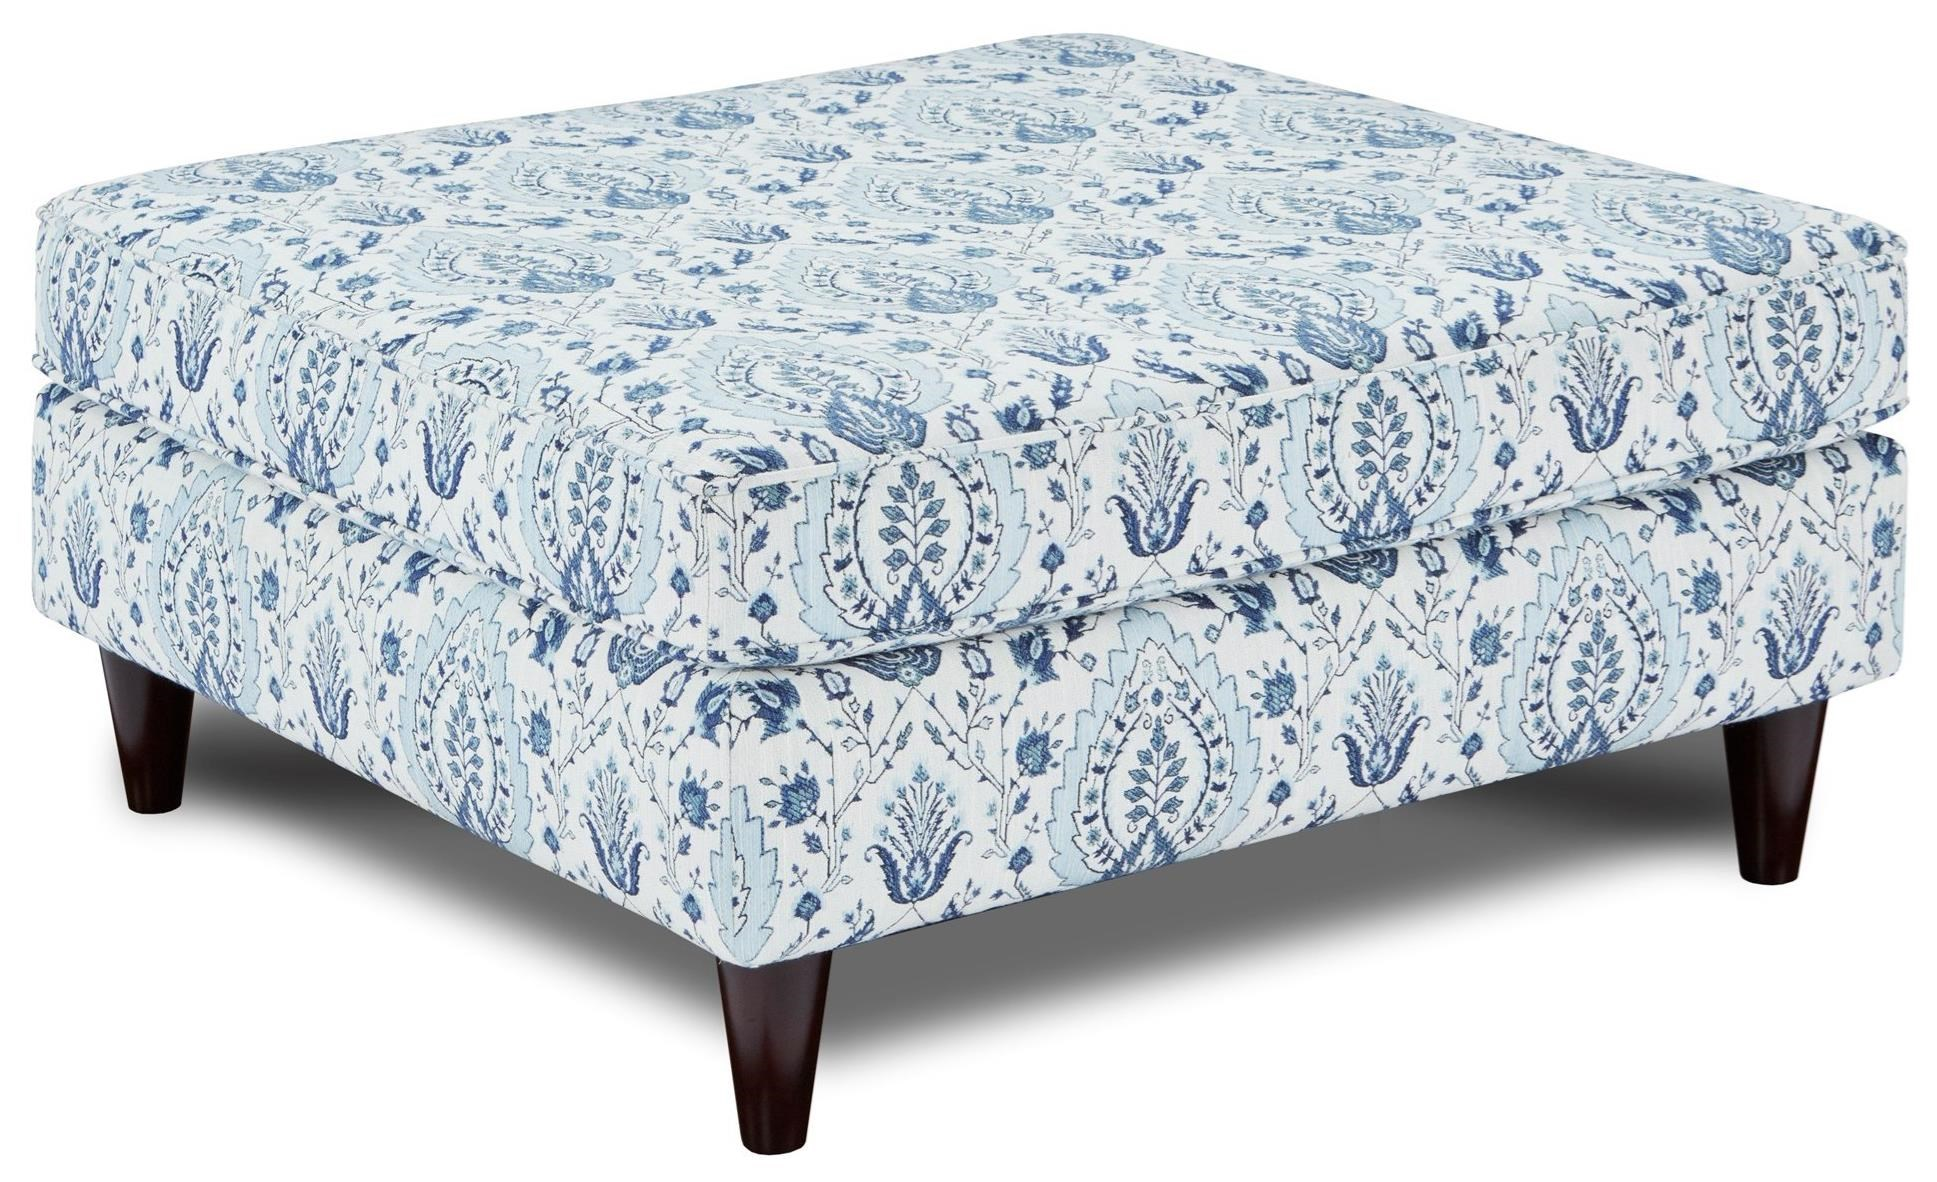 170 Ottoman by Fusion Furniture at Miller Waldrop Furniture and Decor